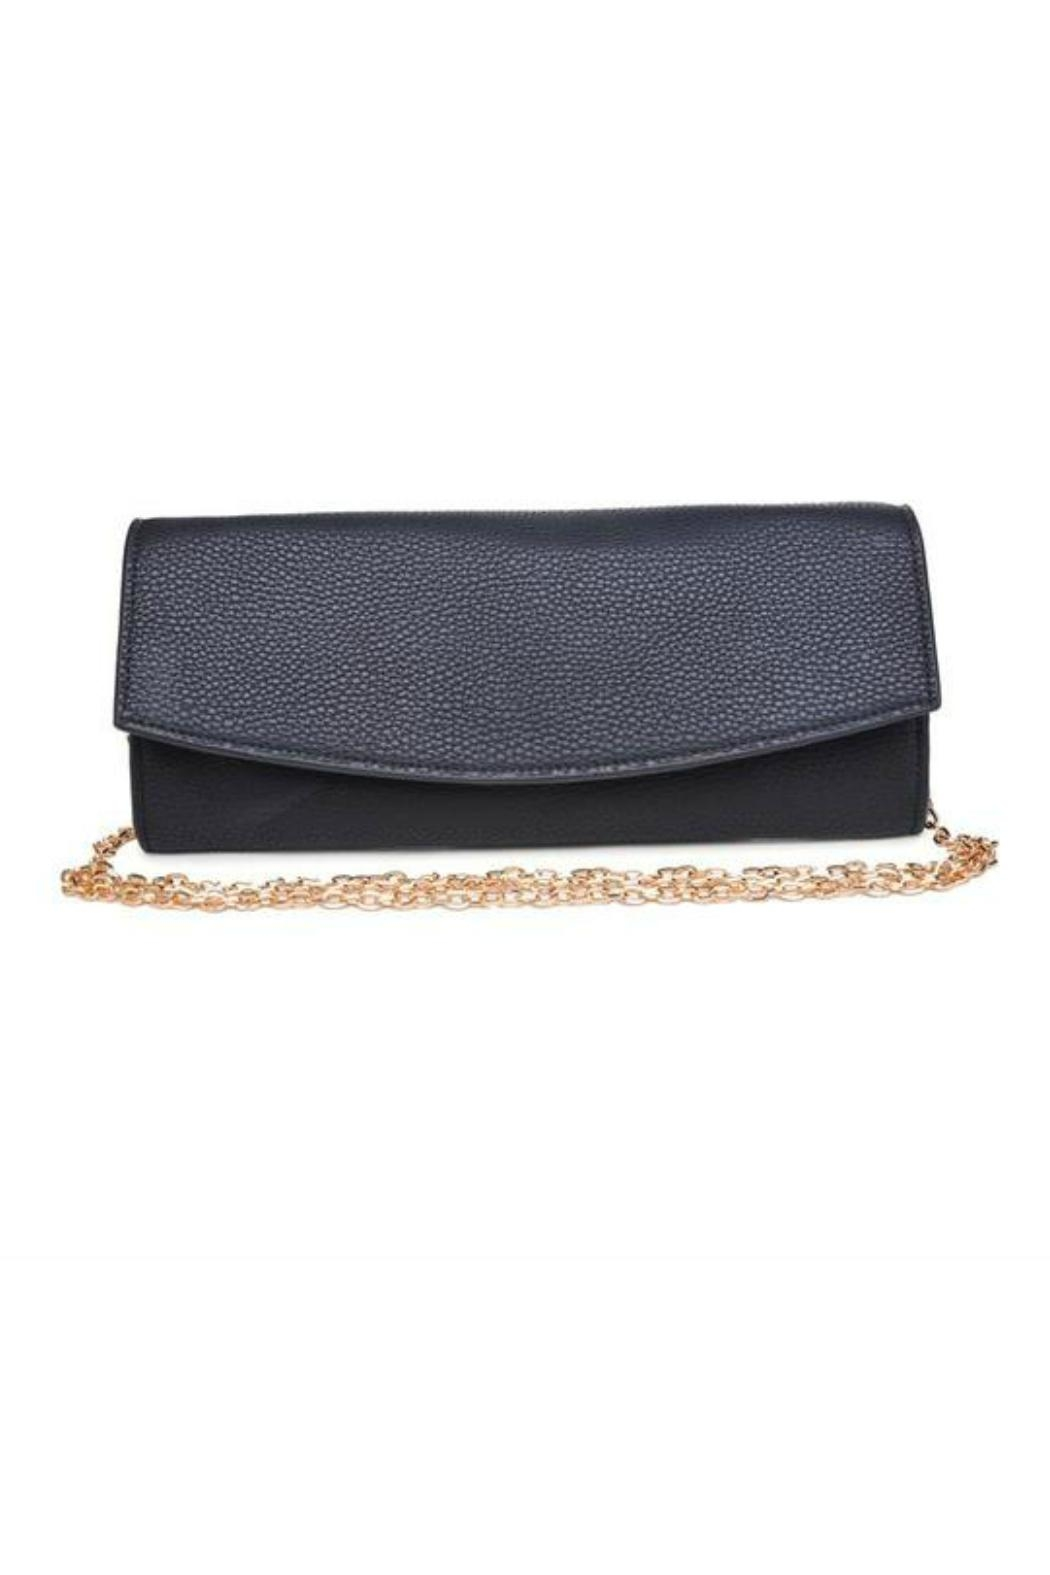 Urban Expressions Pepper Clutch - Front Cropped Image